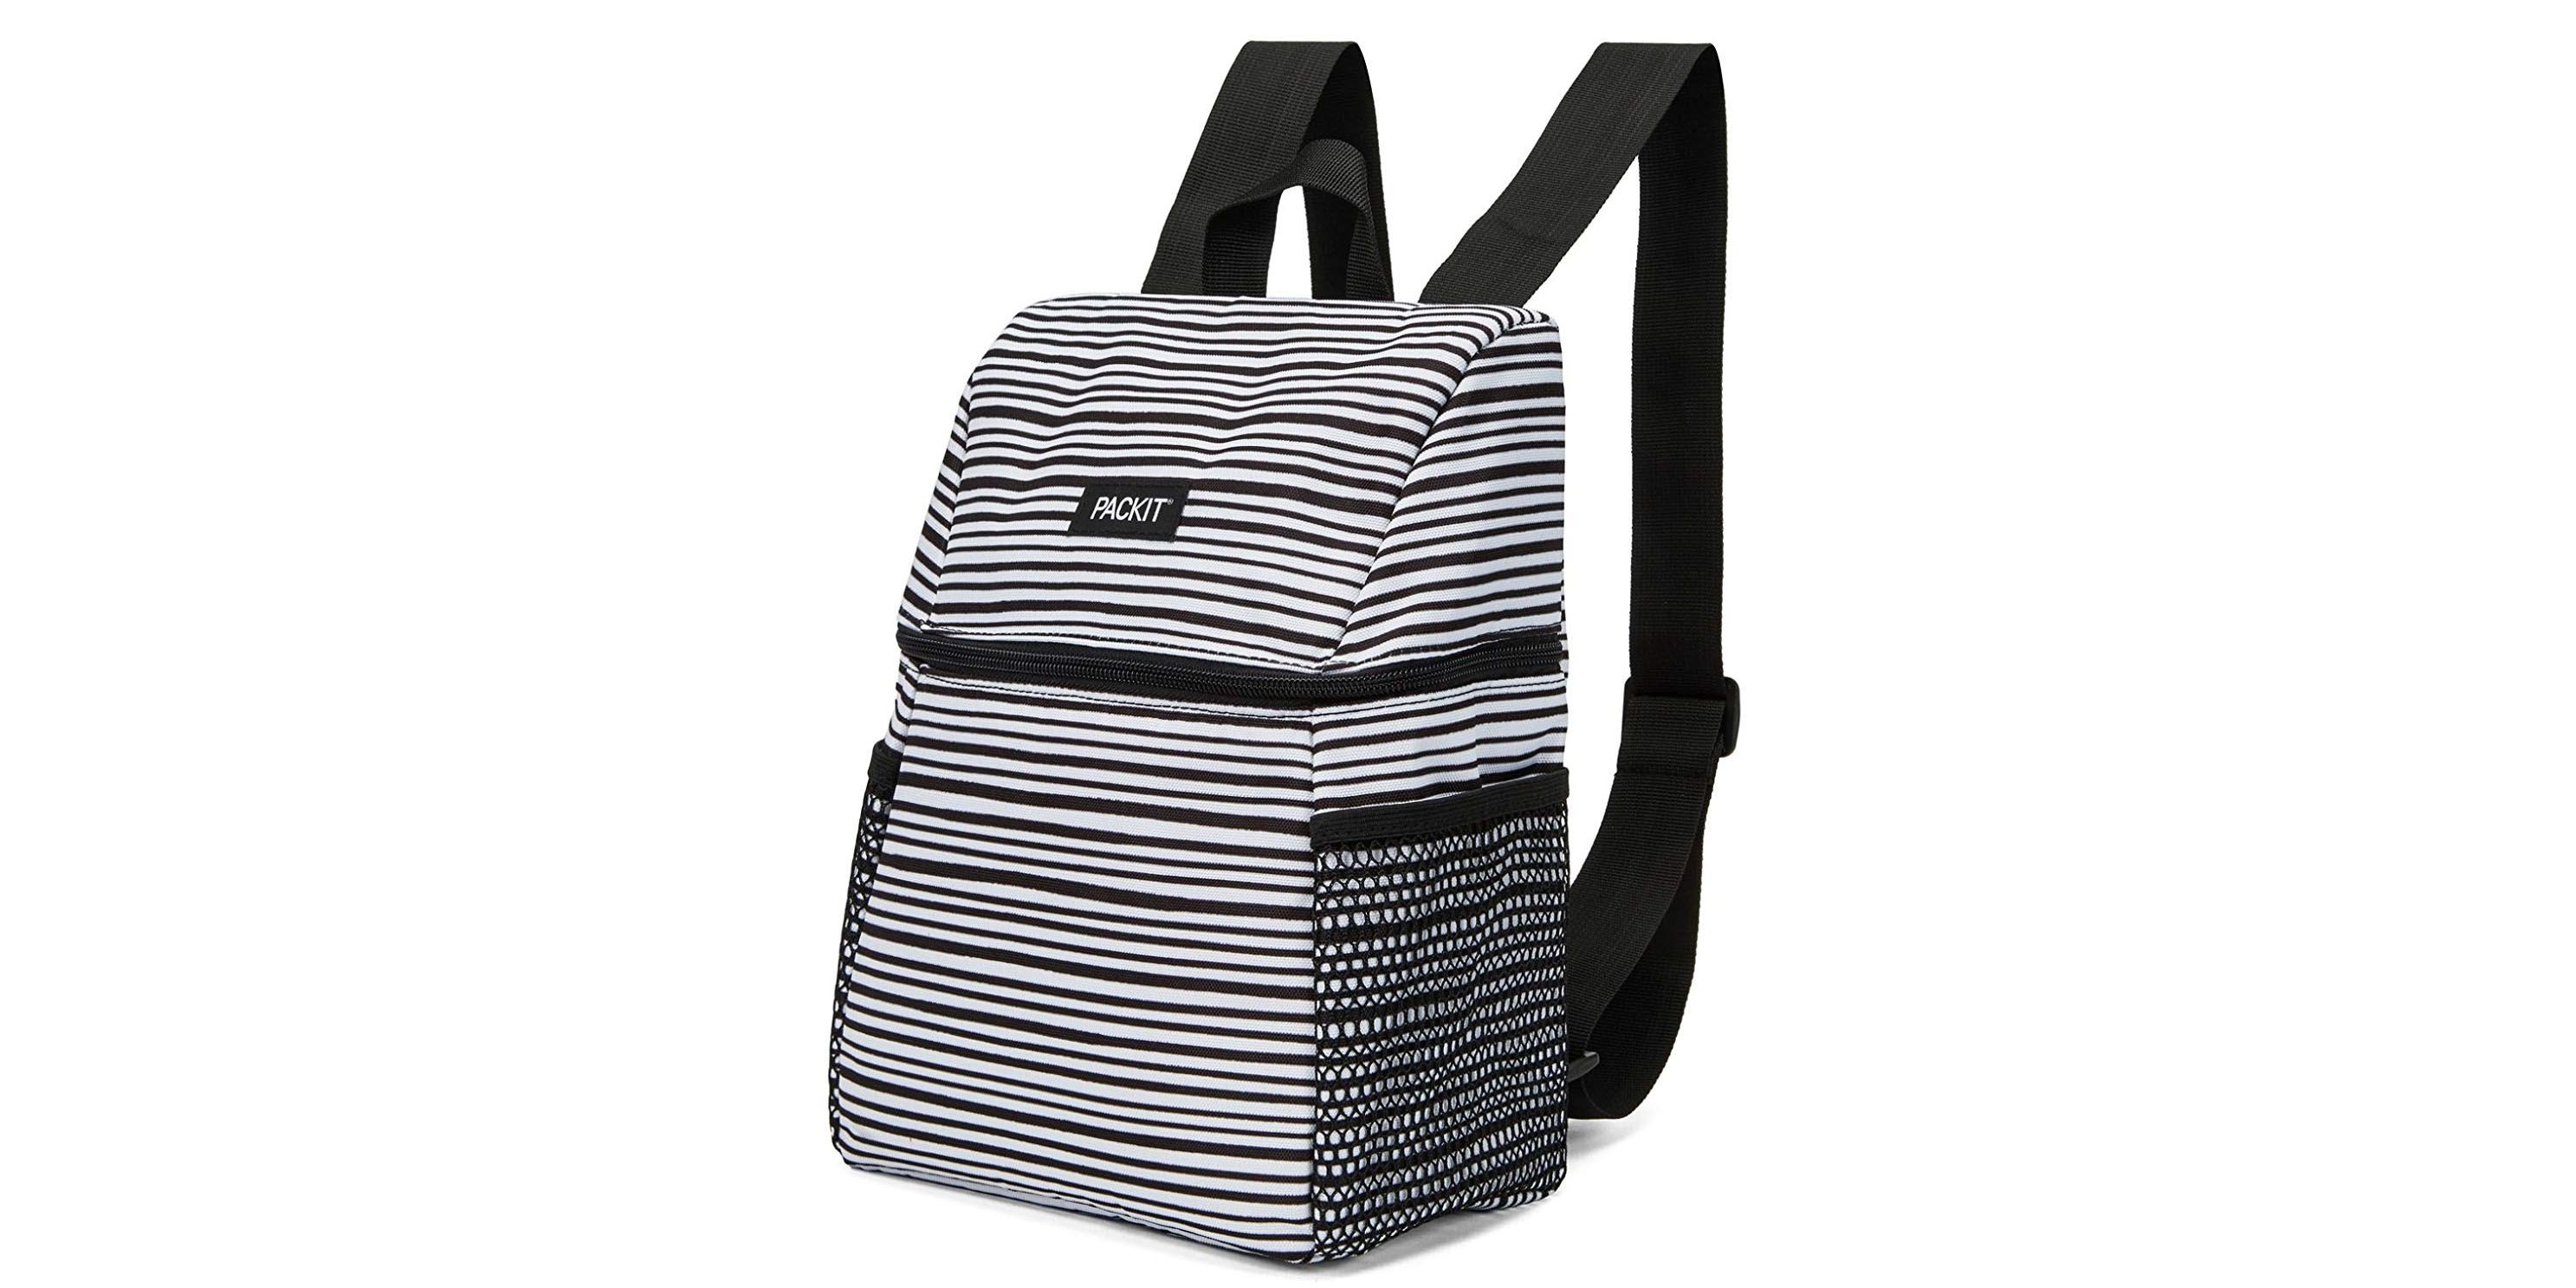 Black Insulated Lunch Box Lunch Bag for Women Man Adults Kids for Work Thermal Insulated Canvas Large Cooler Box Lunch Tote Bag Reuable Thermal Cool Bag Bento Box for Boys Girls Work School